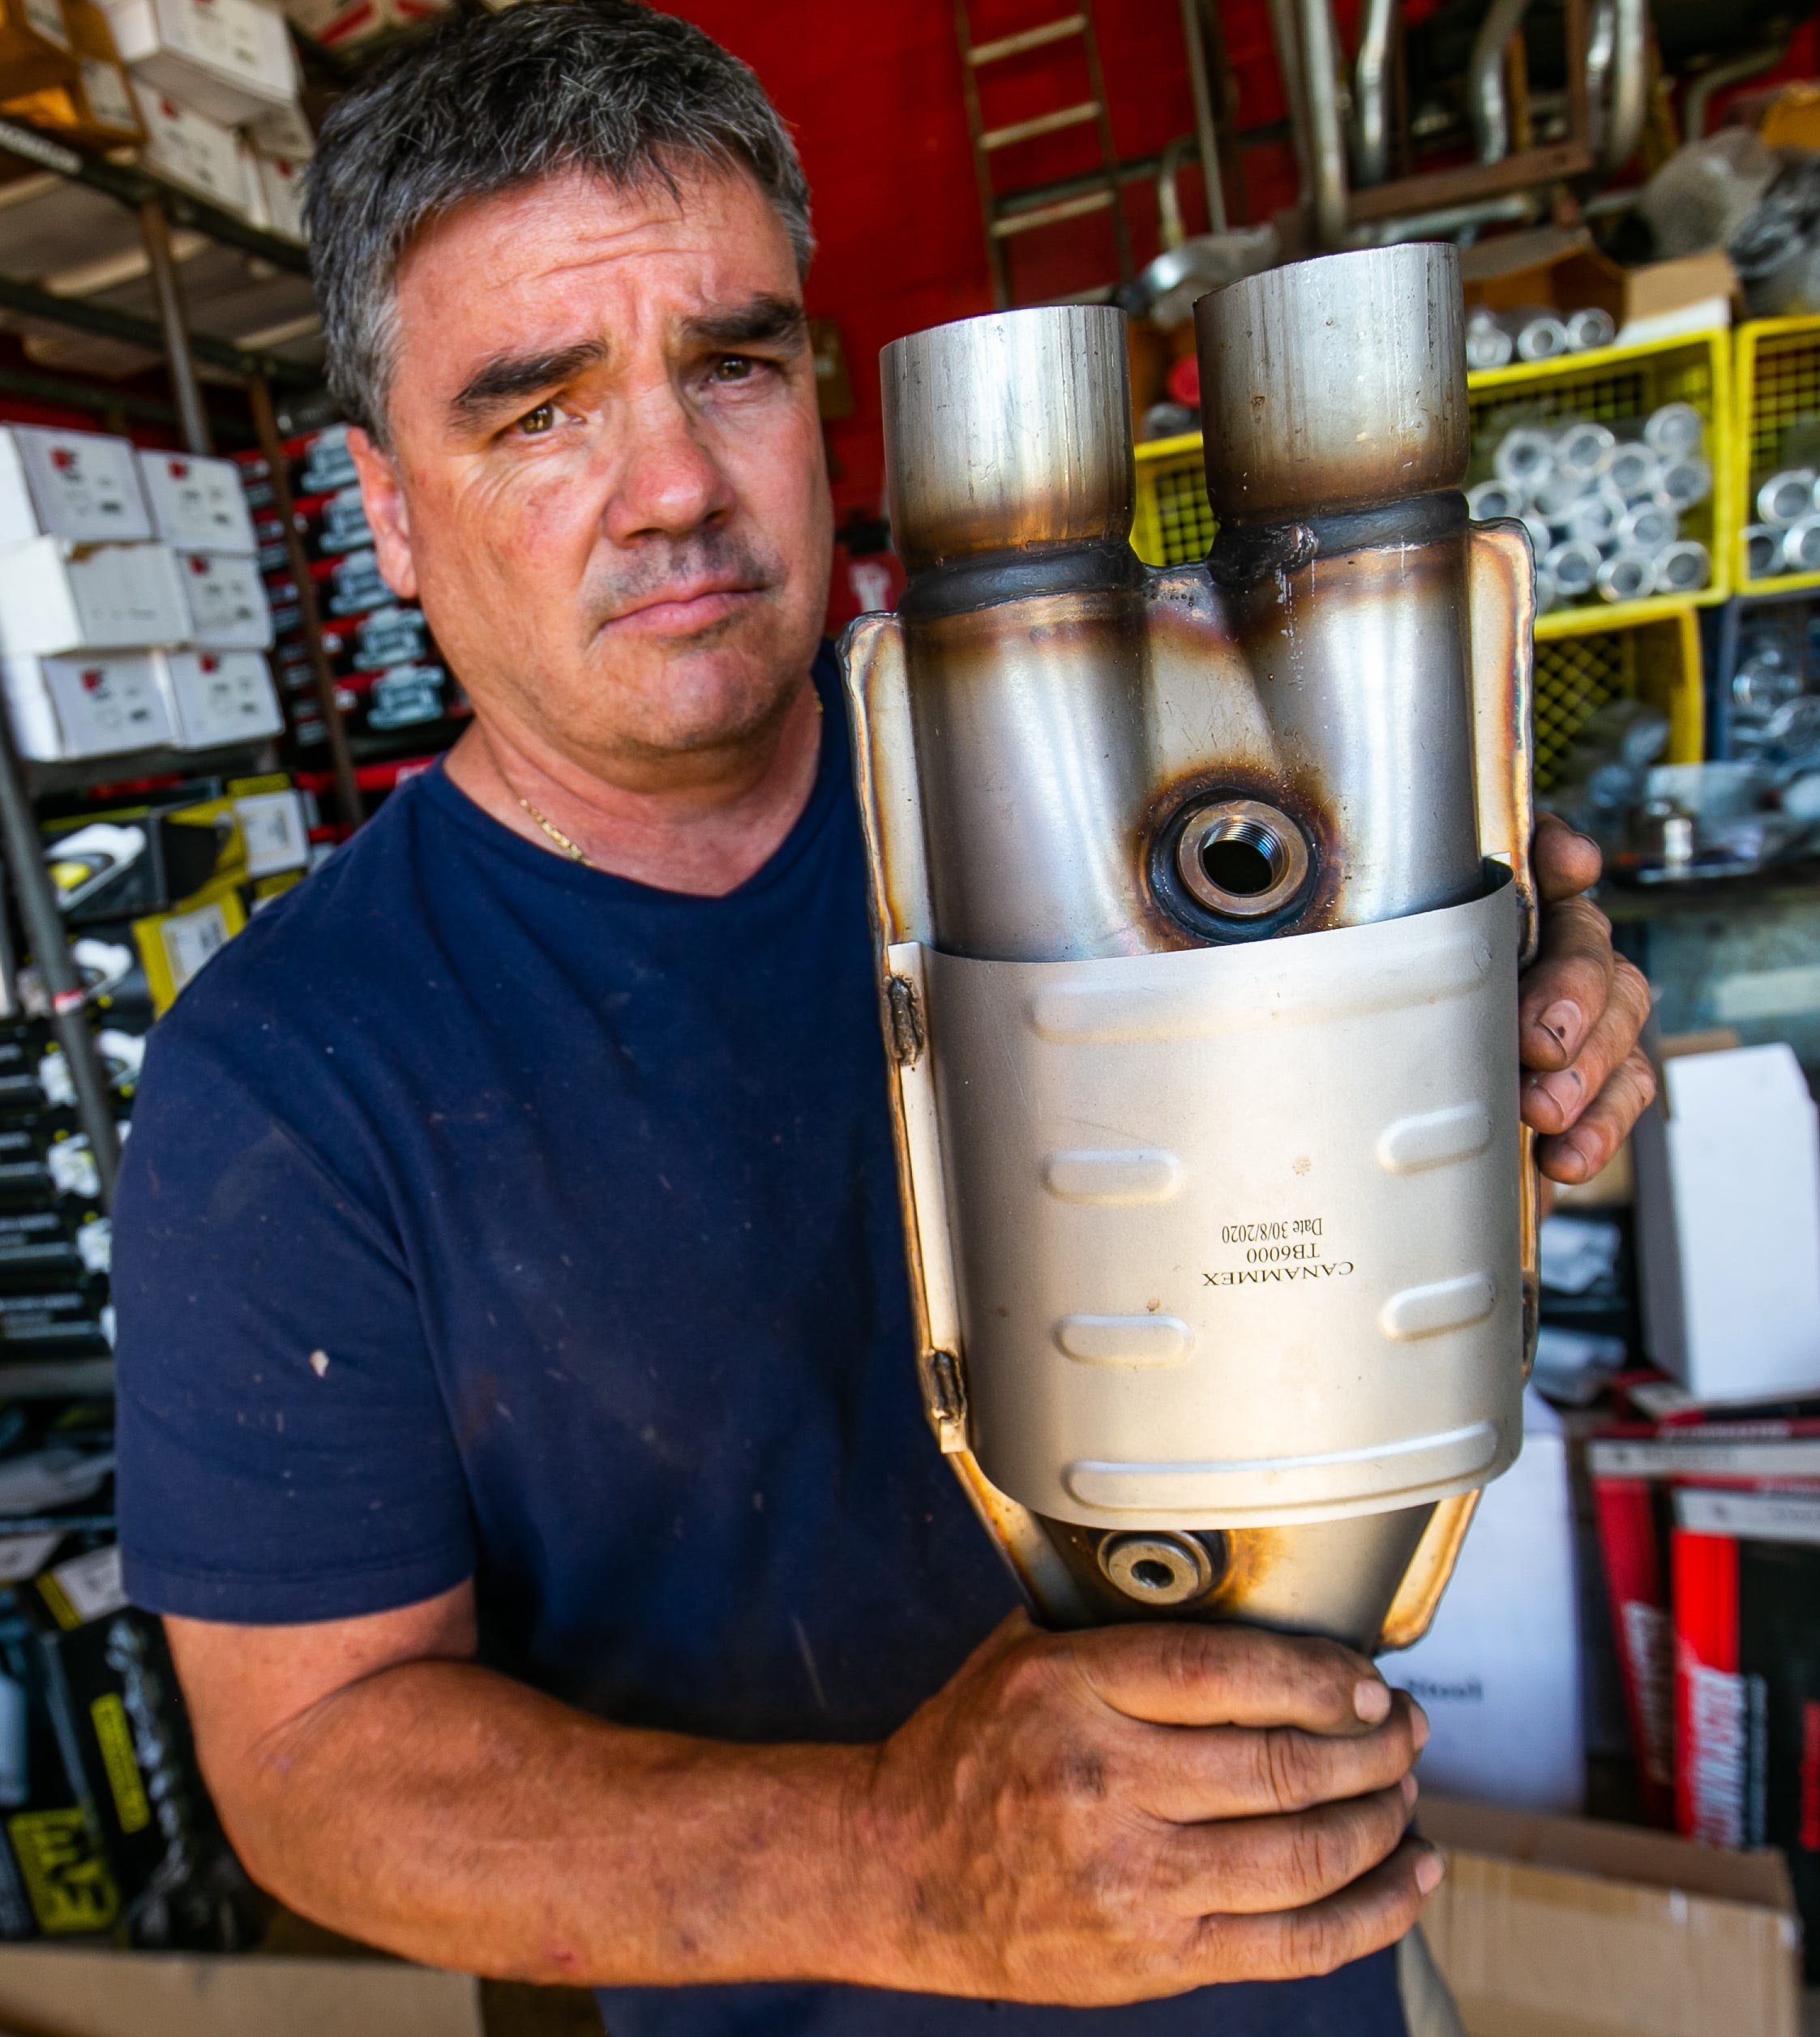 Catalytic converter theft soars: Thieves target SUVs ...